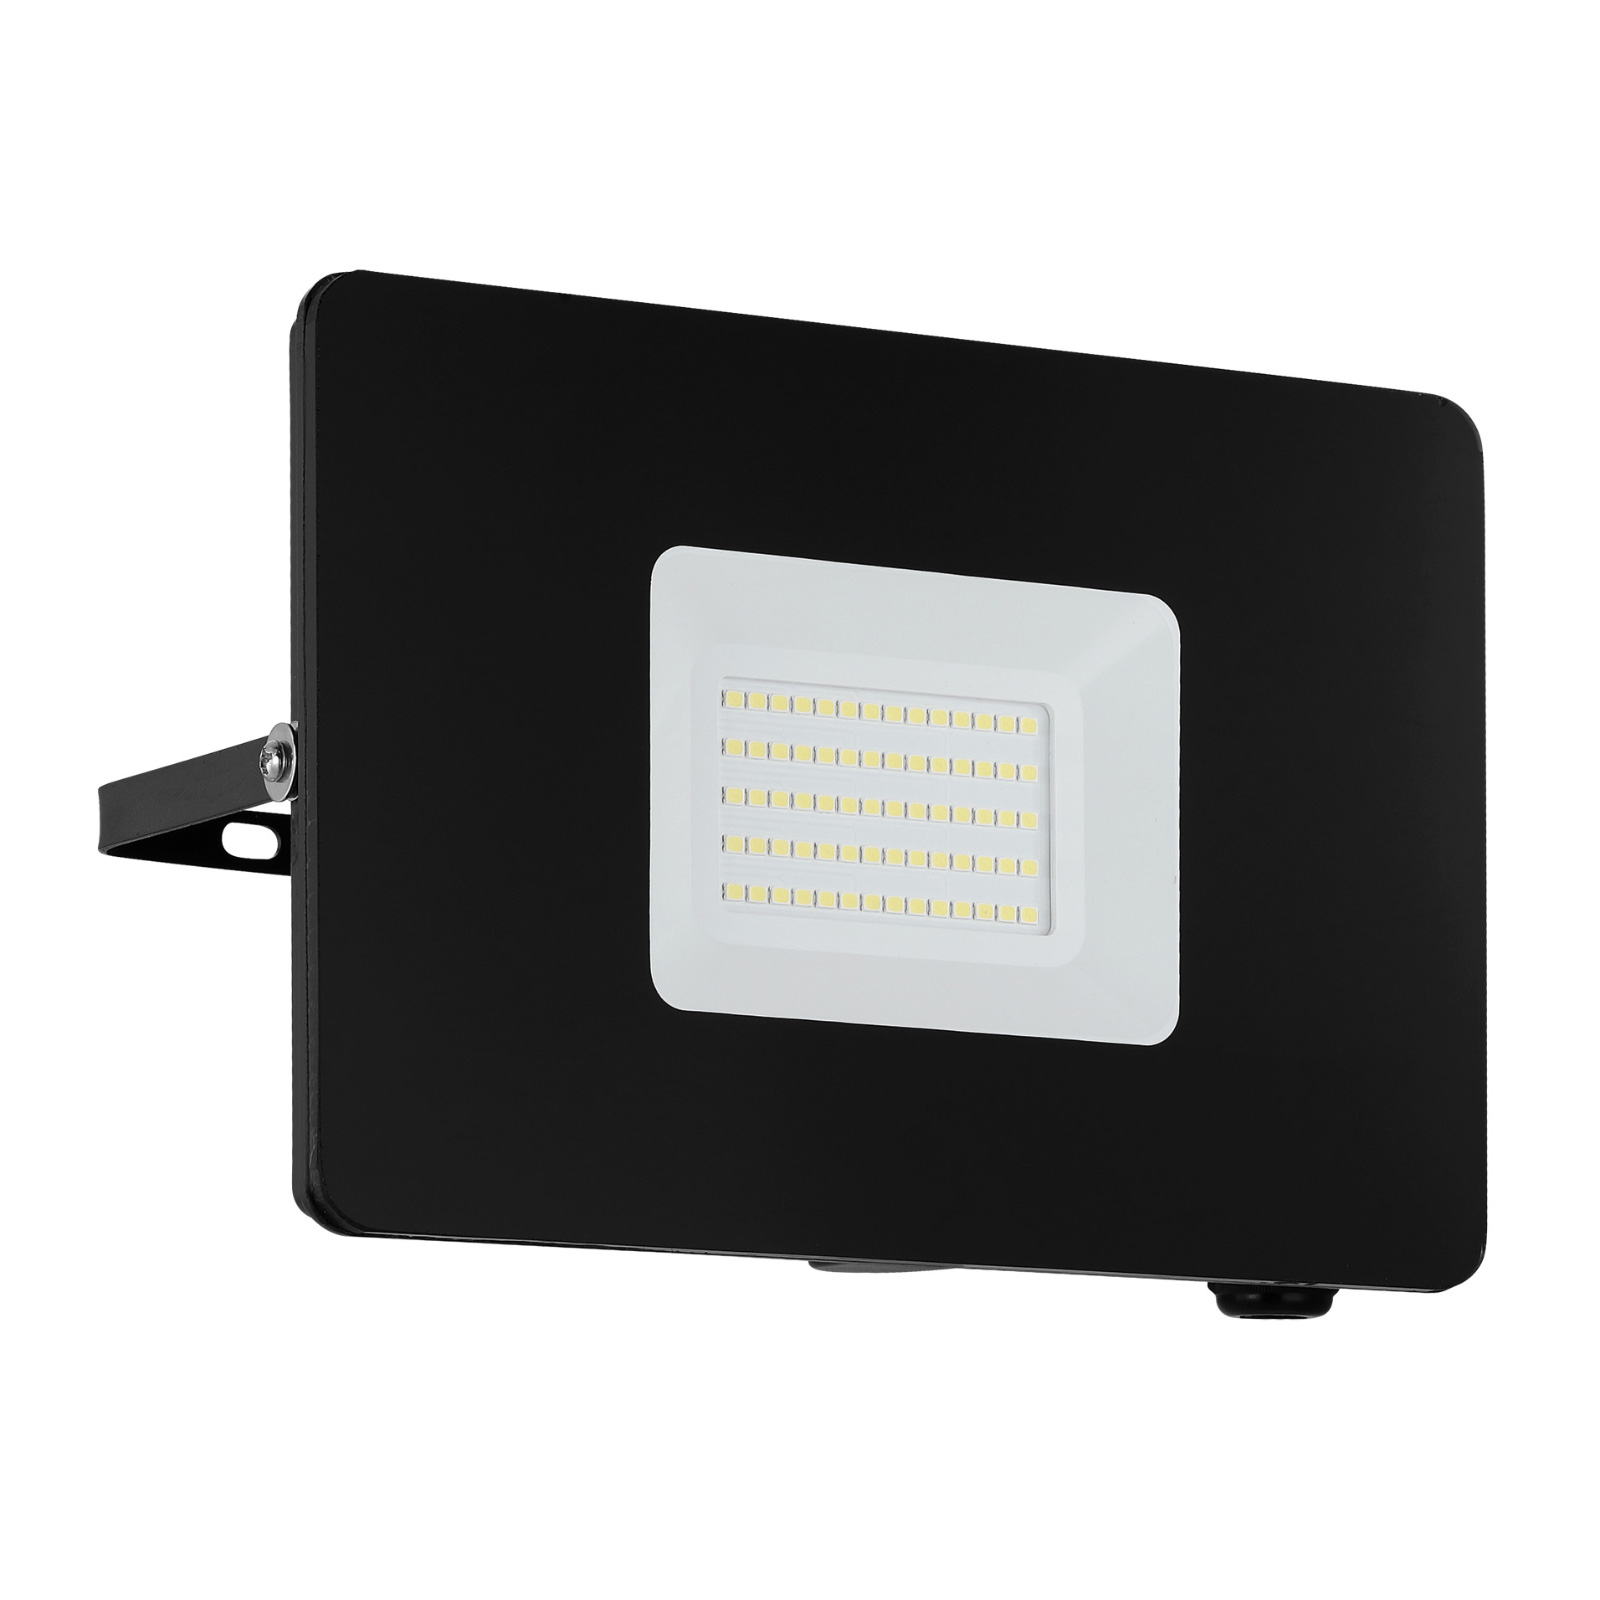 LED buitenspot Faedo 3 in zwart, 50W